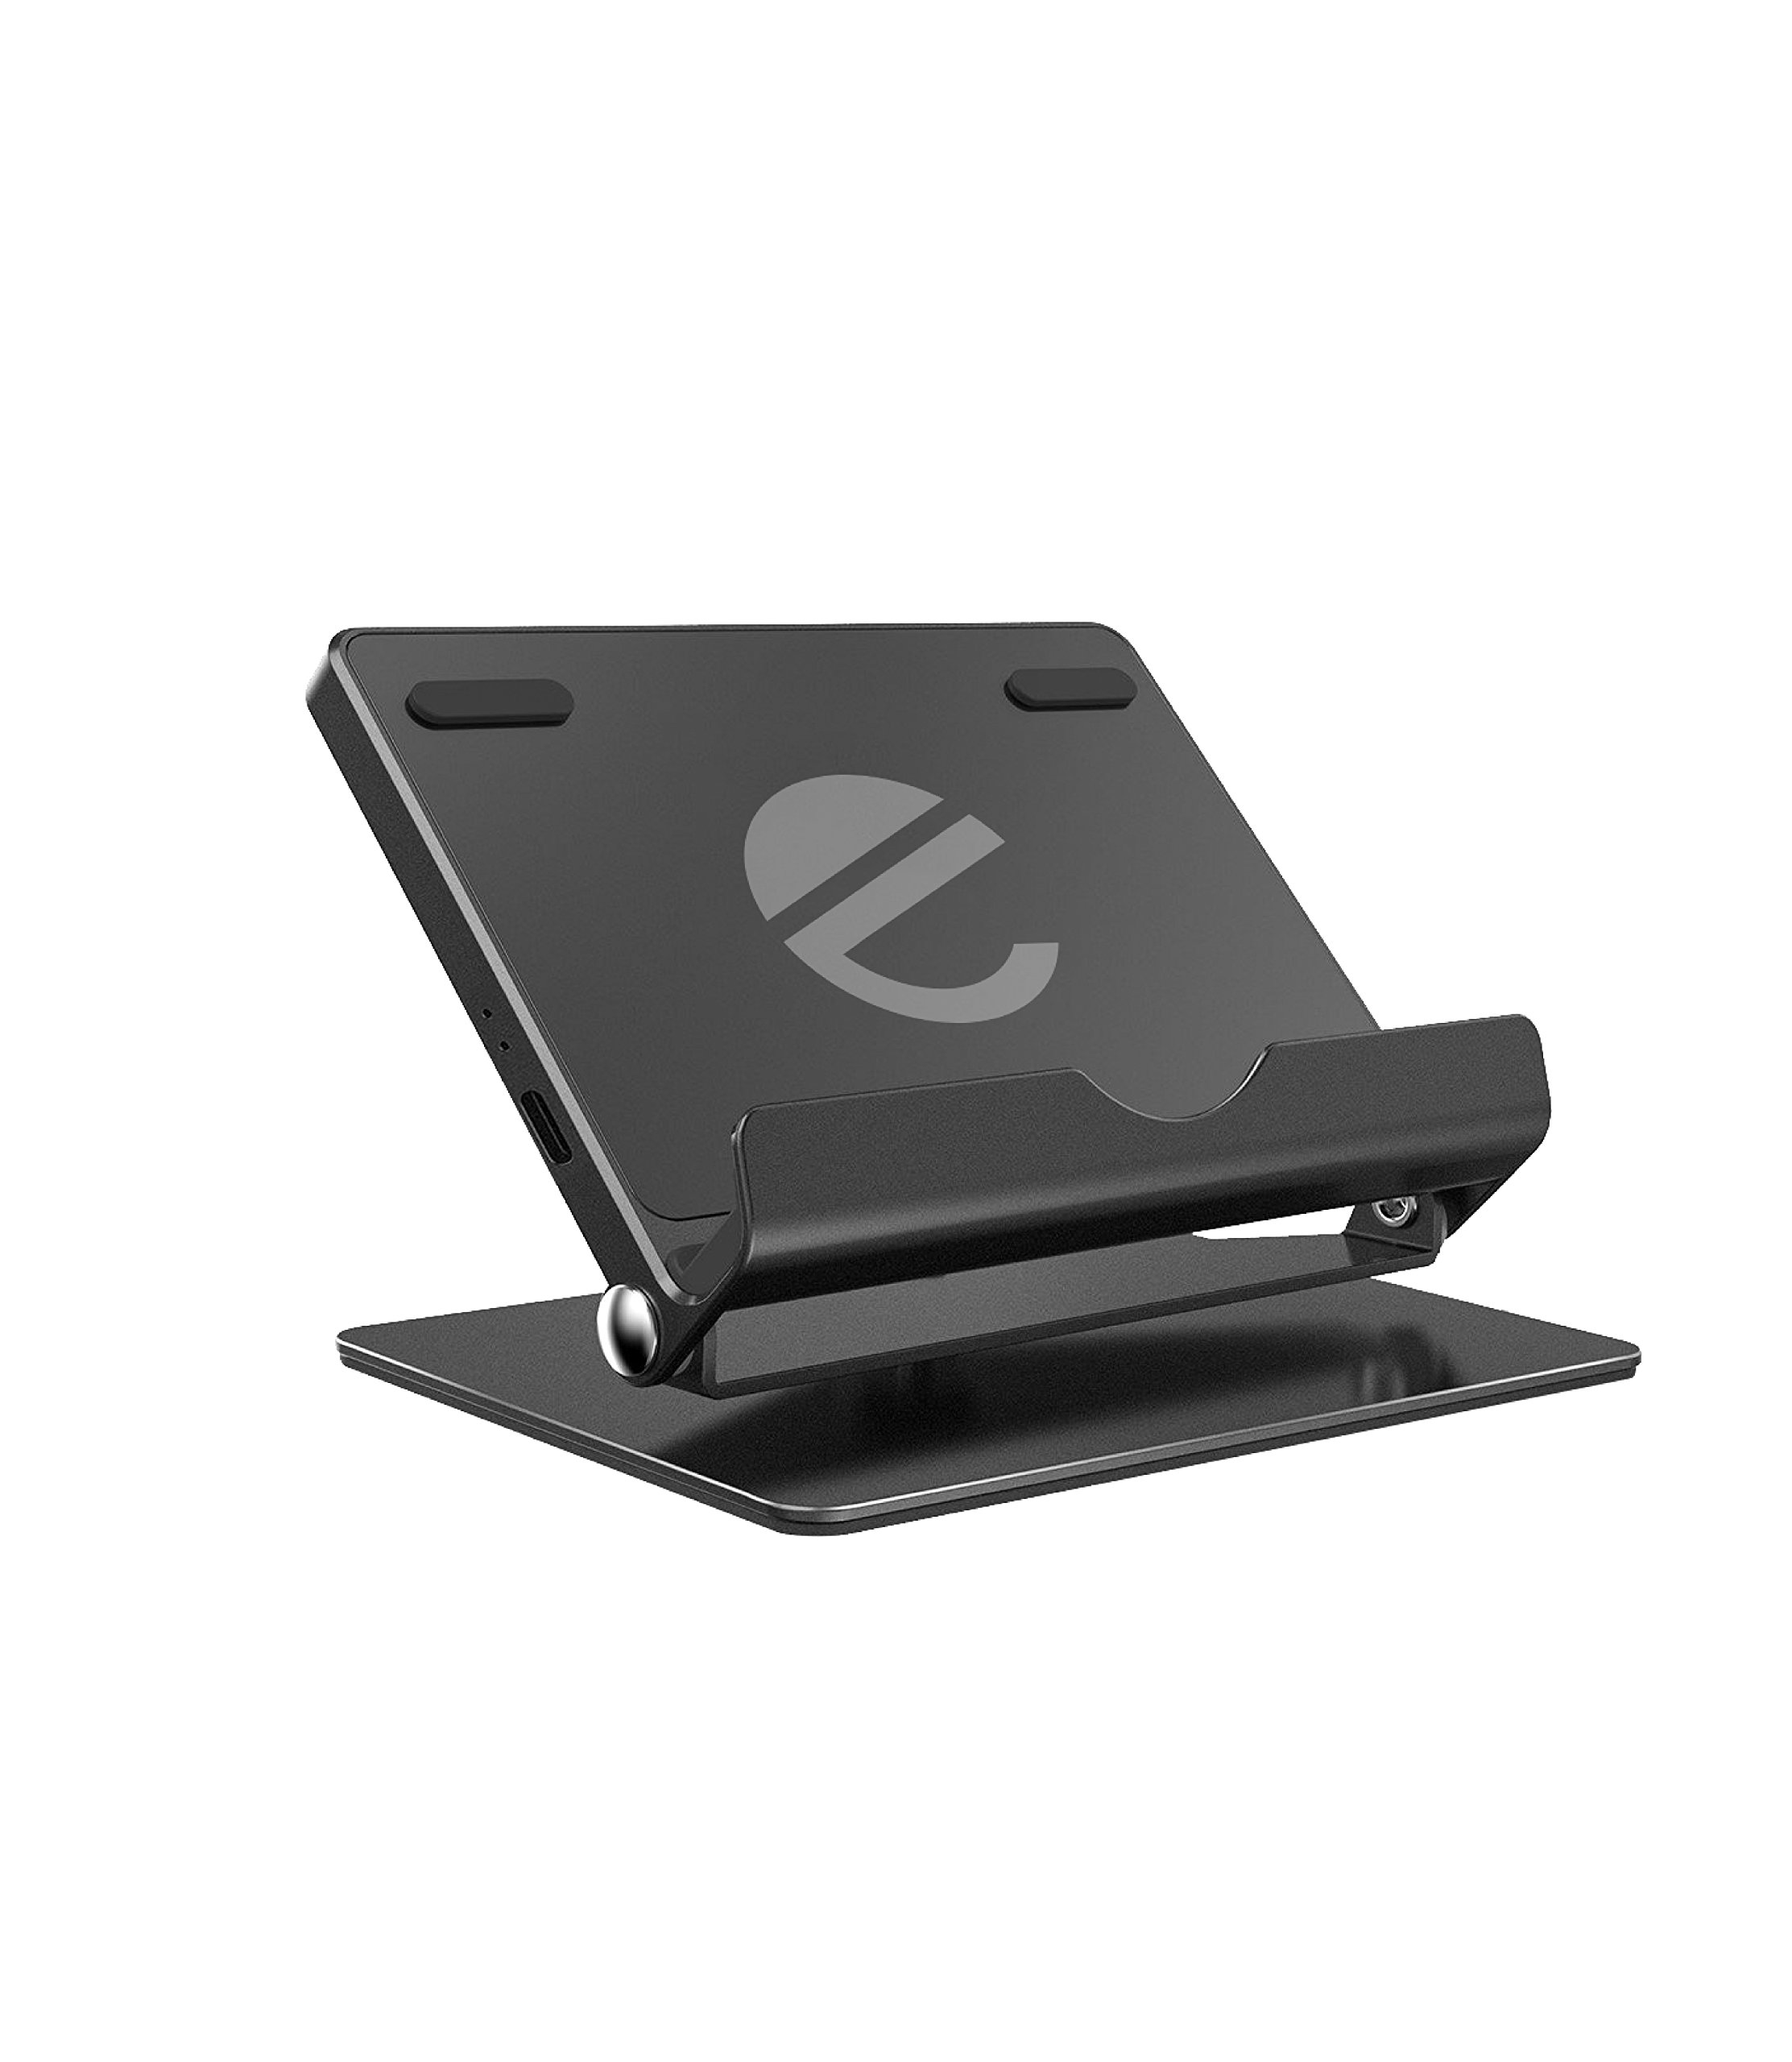 eeco Fast Wireless Charger Stand Foldable with 360 Degree Rotatable Charging Pad for iPhone X, iPhone 8/8 Plus, Galaxy S9/S9 plus/S8/S8 Plus, S7/S7 Edge, Note 8 and more Qi-Enabled Devices